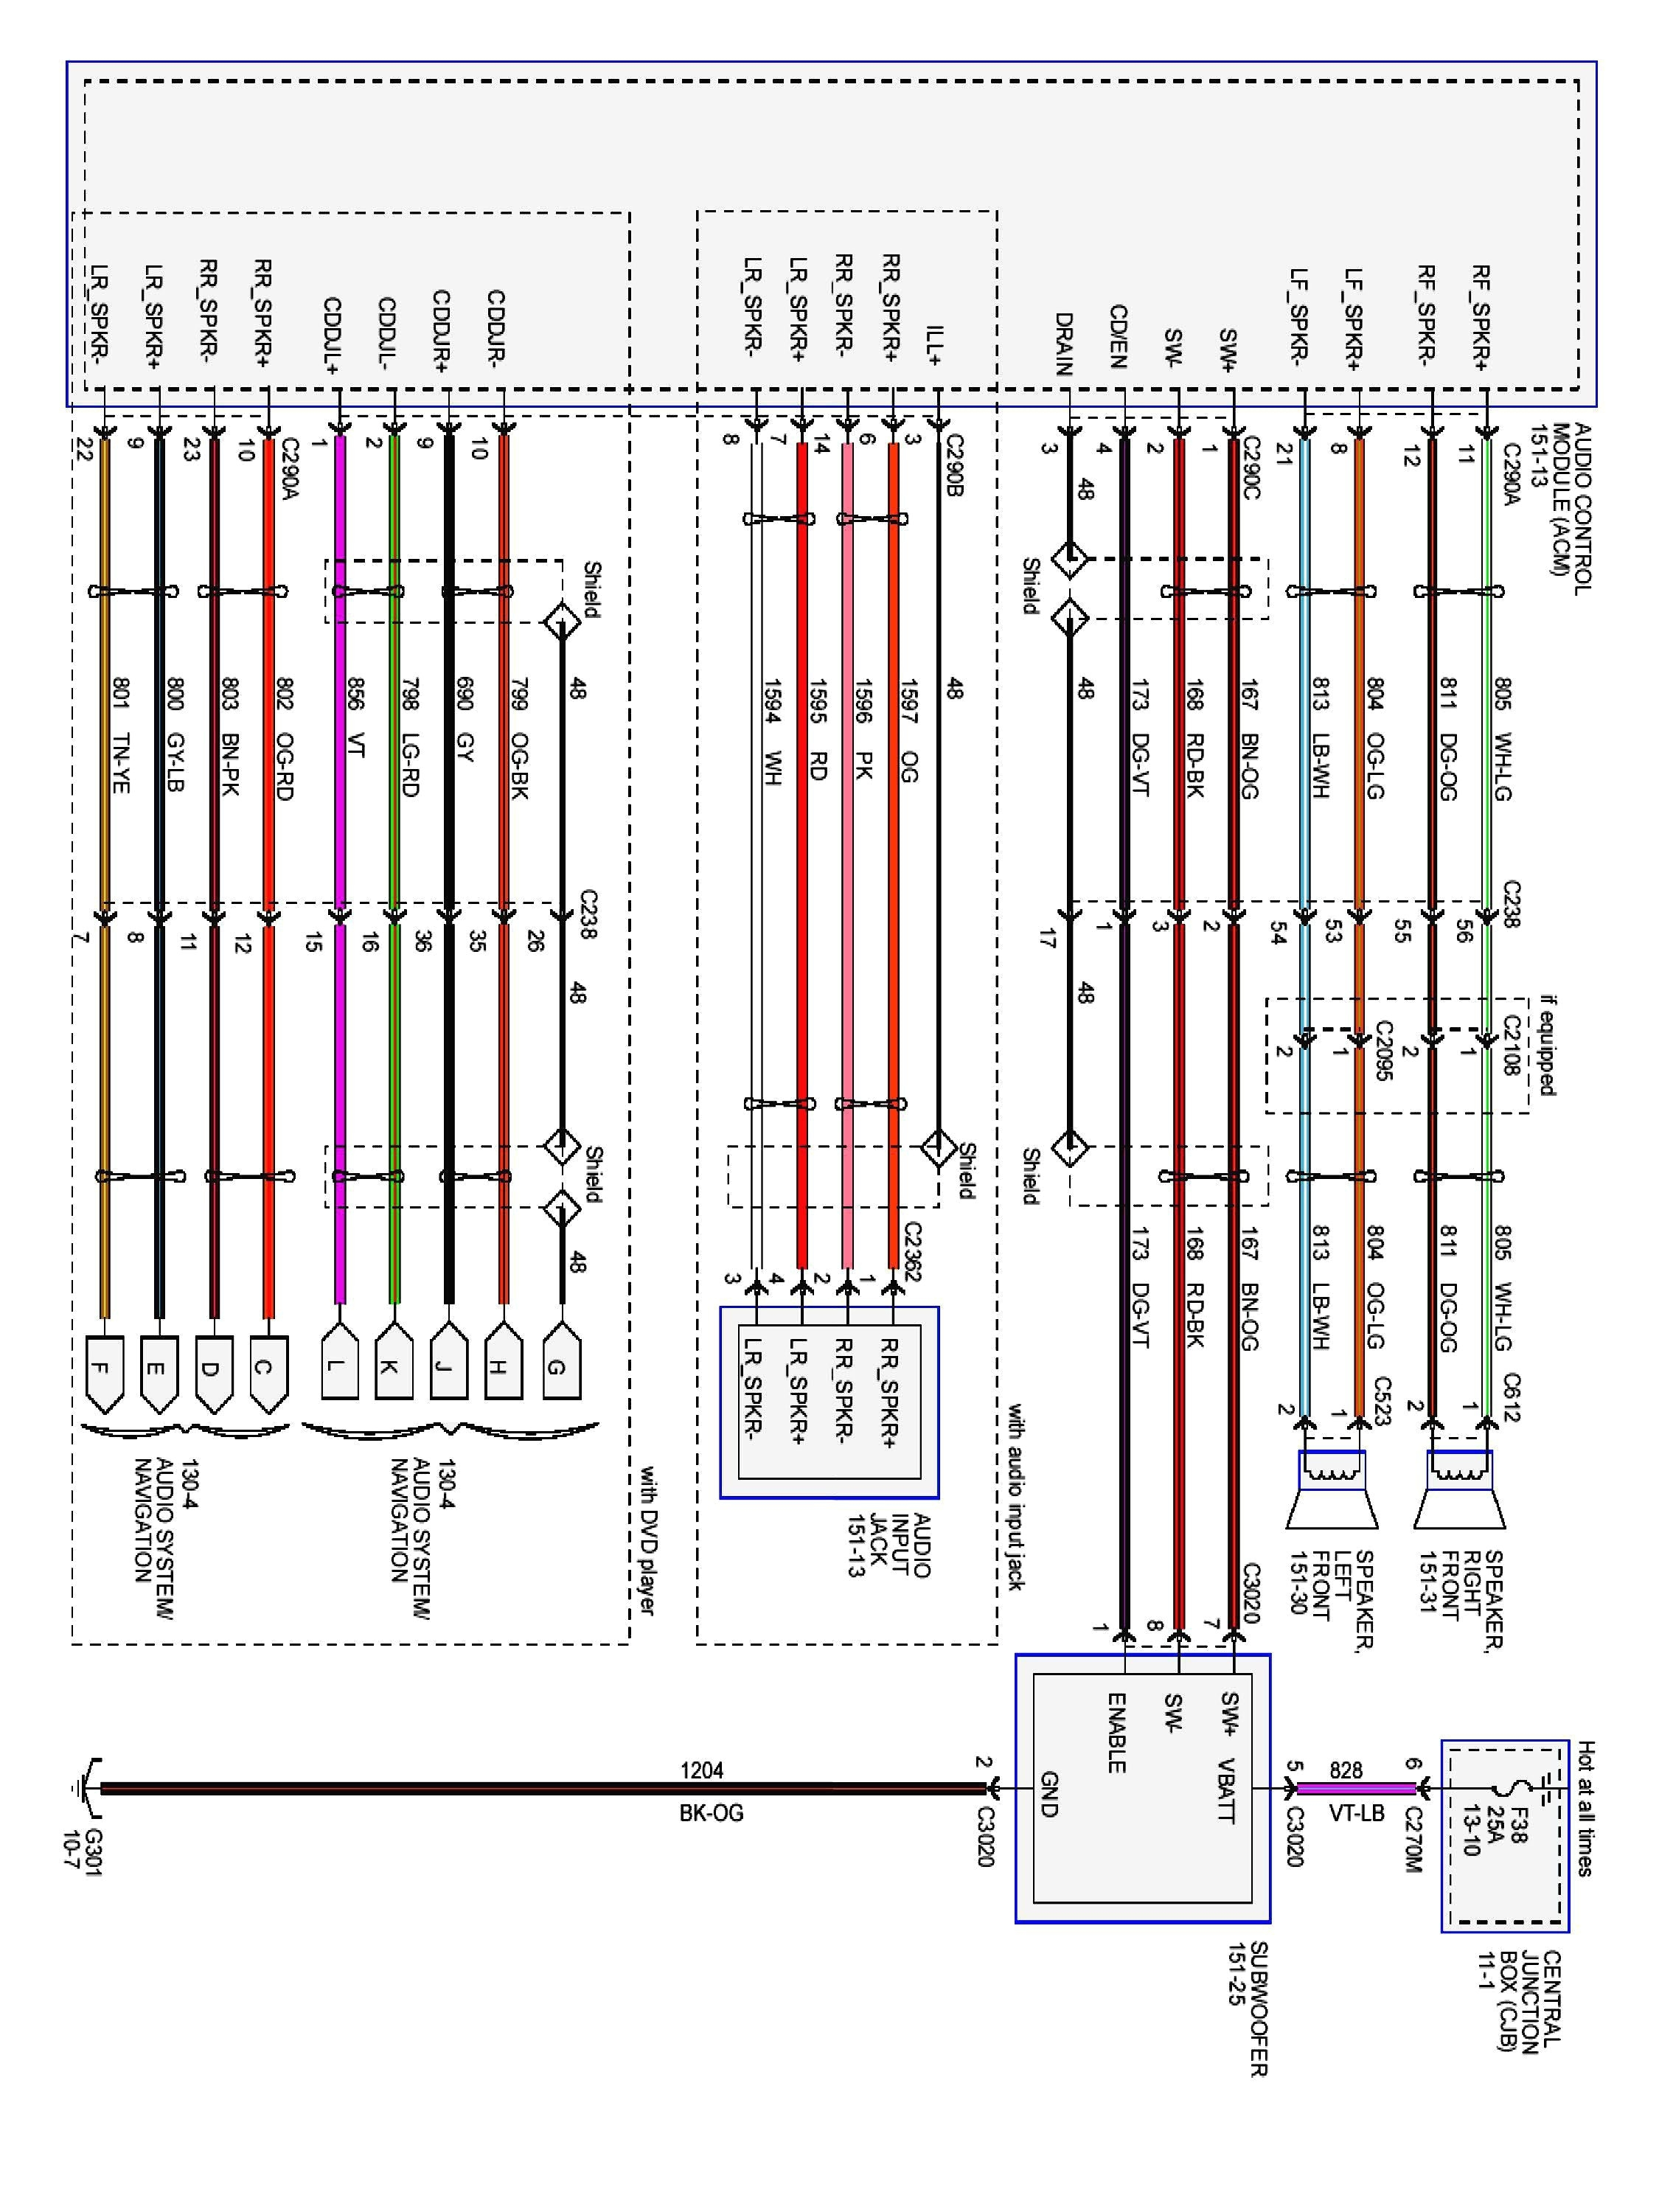 1997 Ford F150 Radio Wiring Diagram